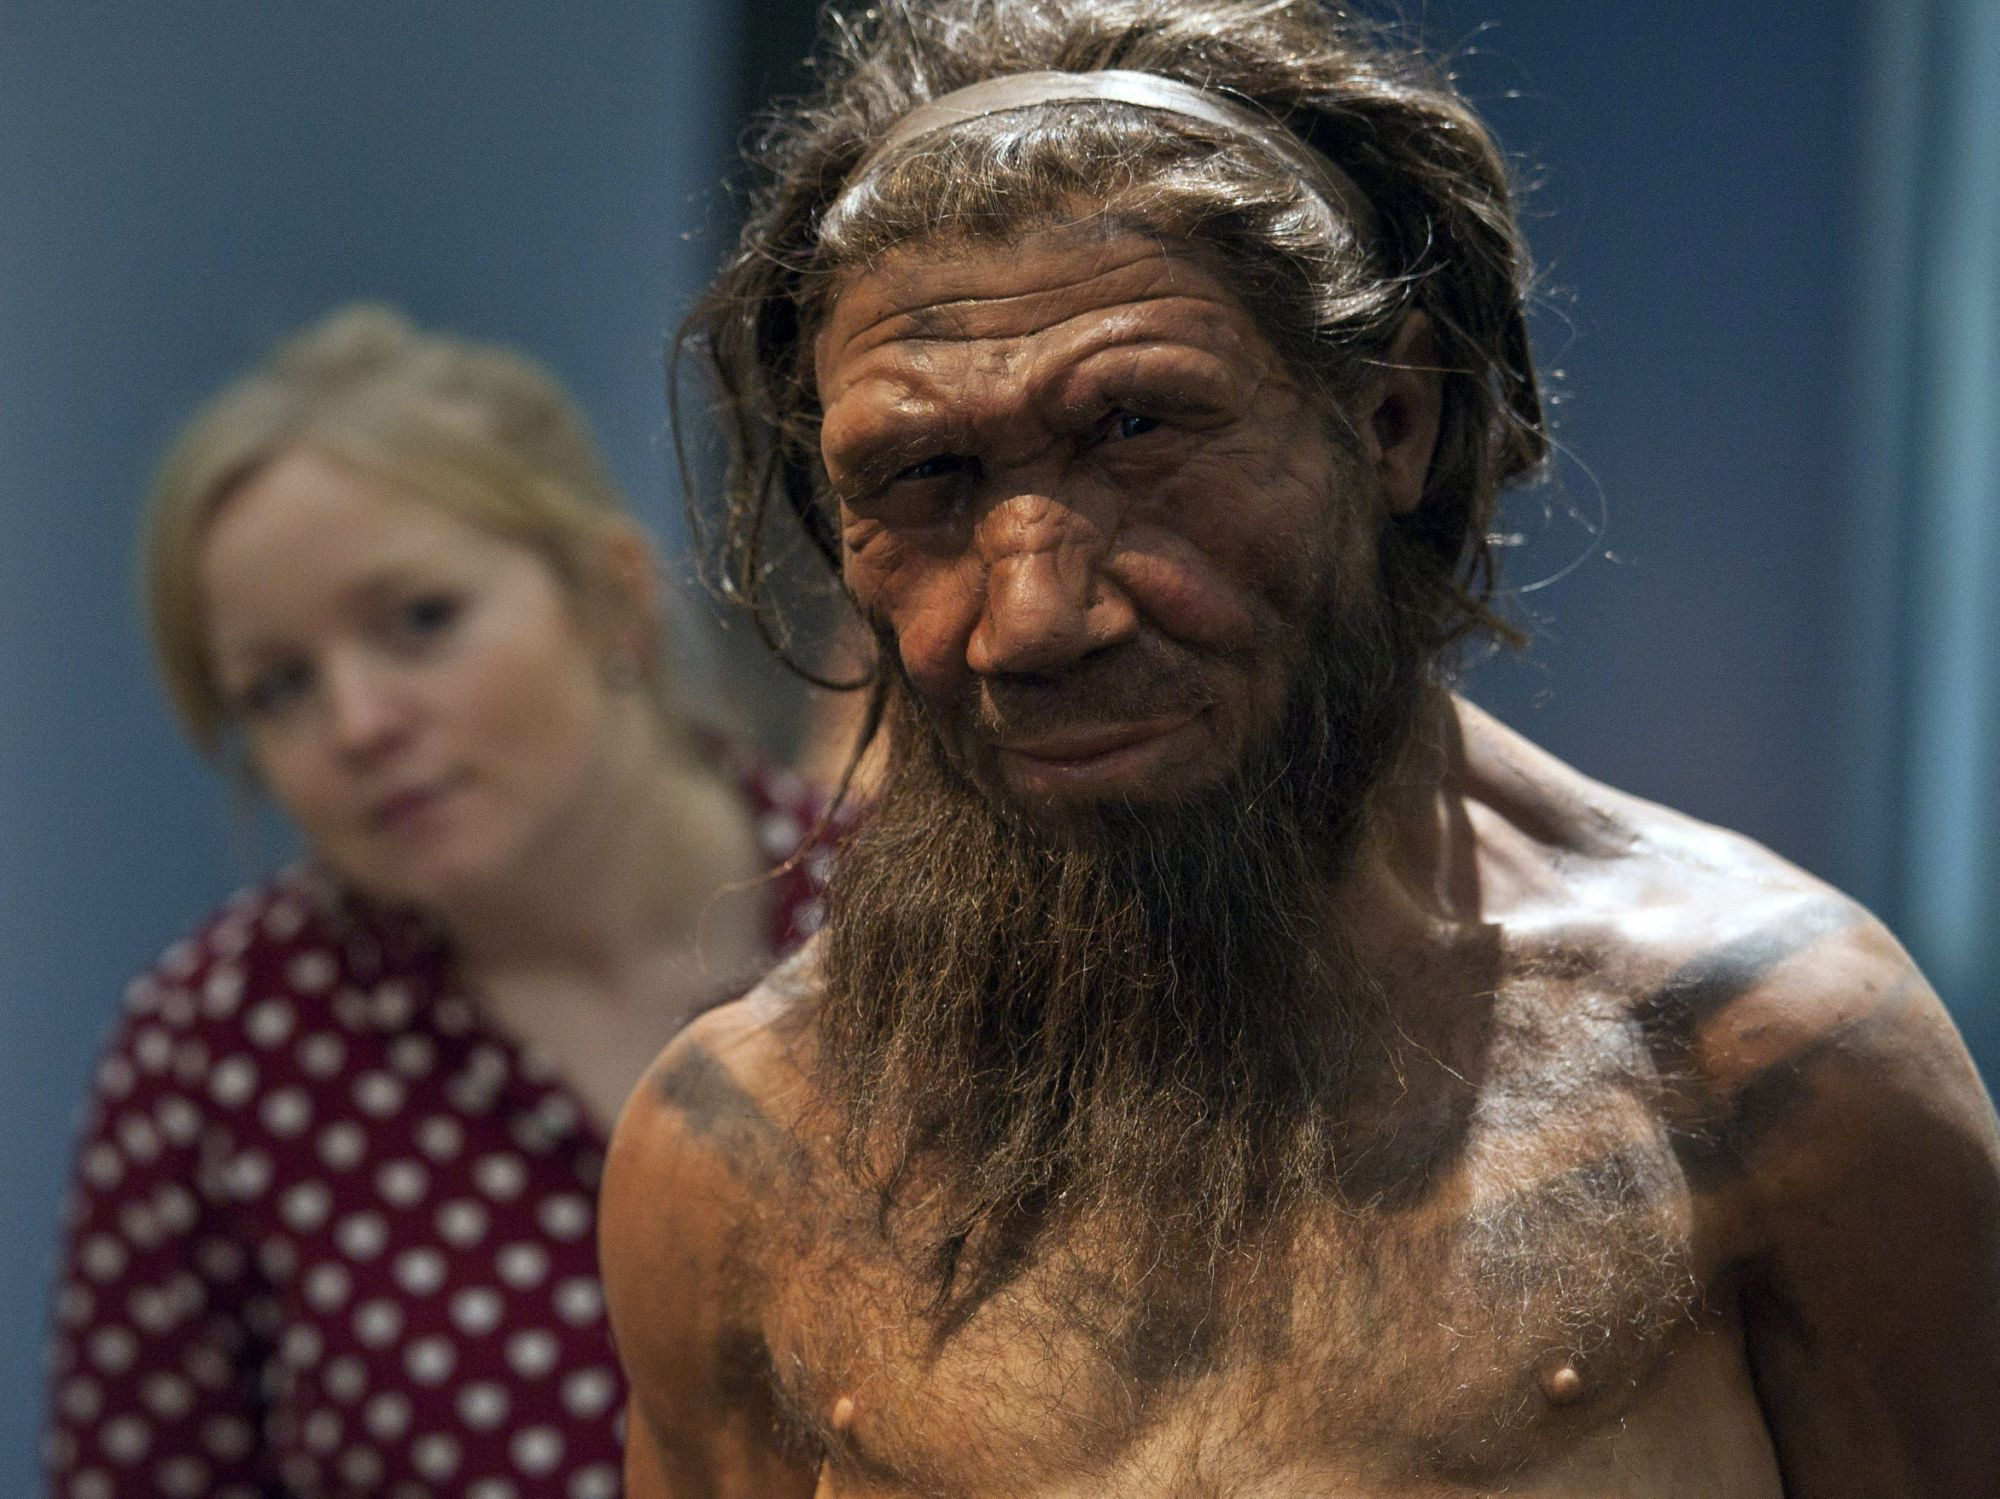 A genetic advantage inherited from Neanderthals could give some people a 22% lower risk of severe COVID-19